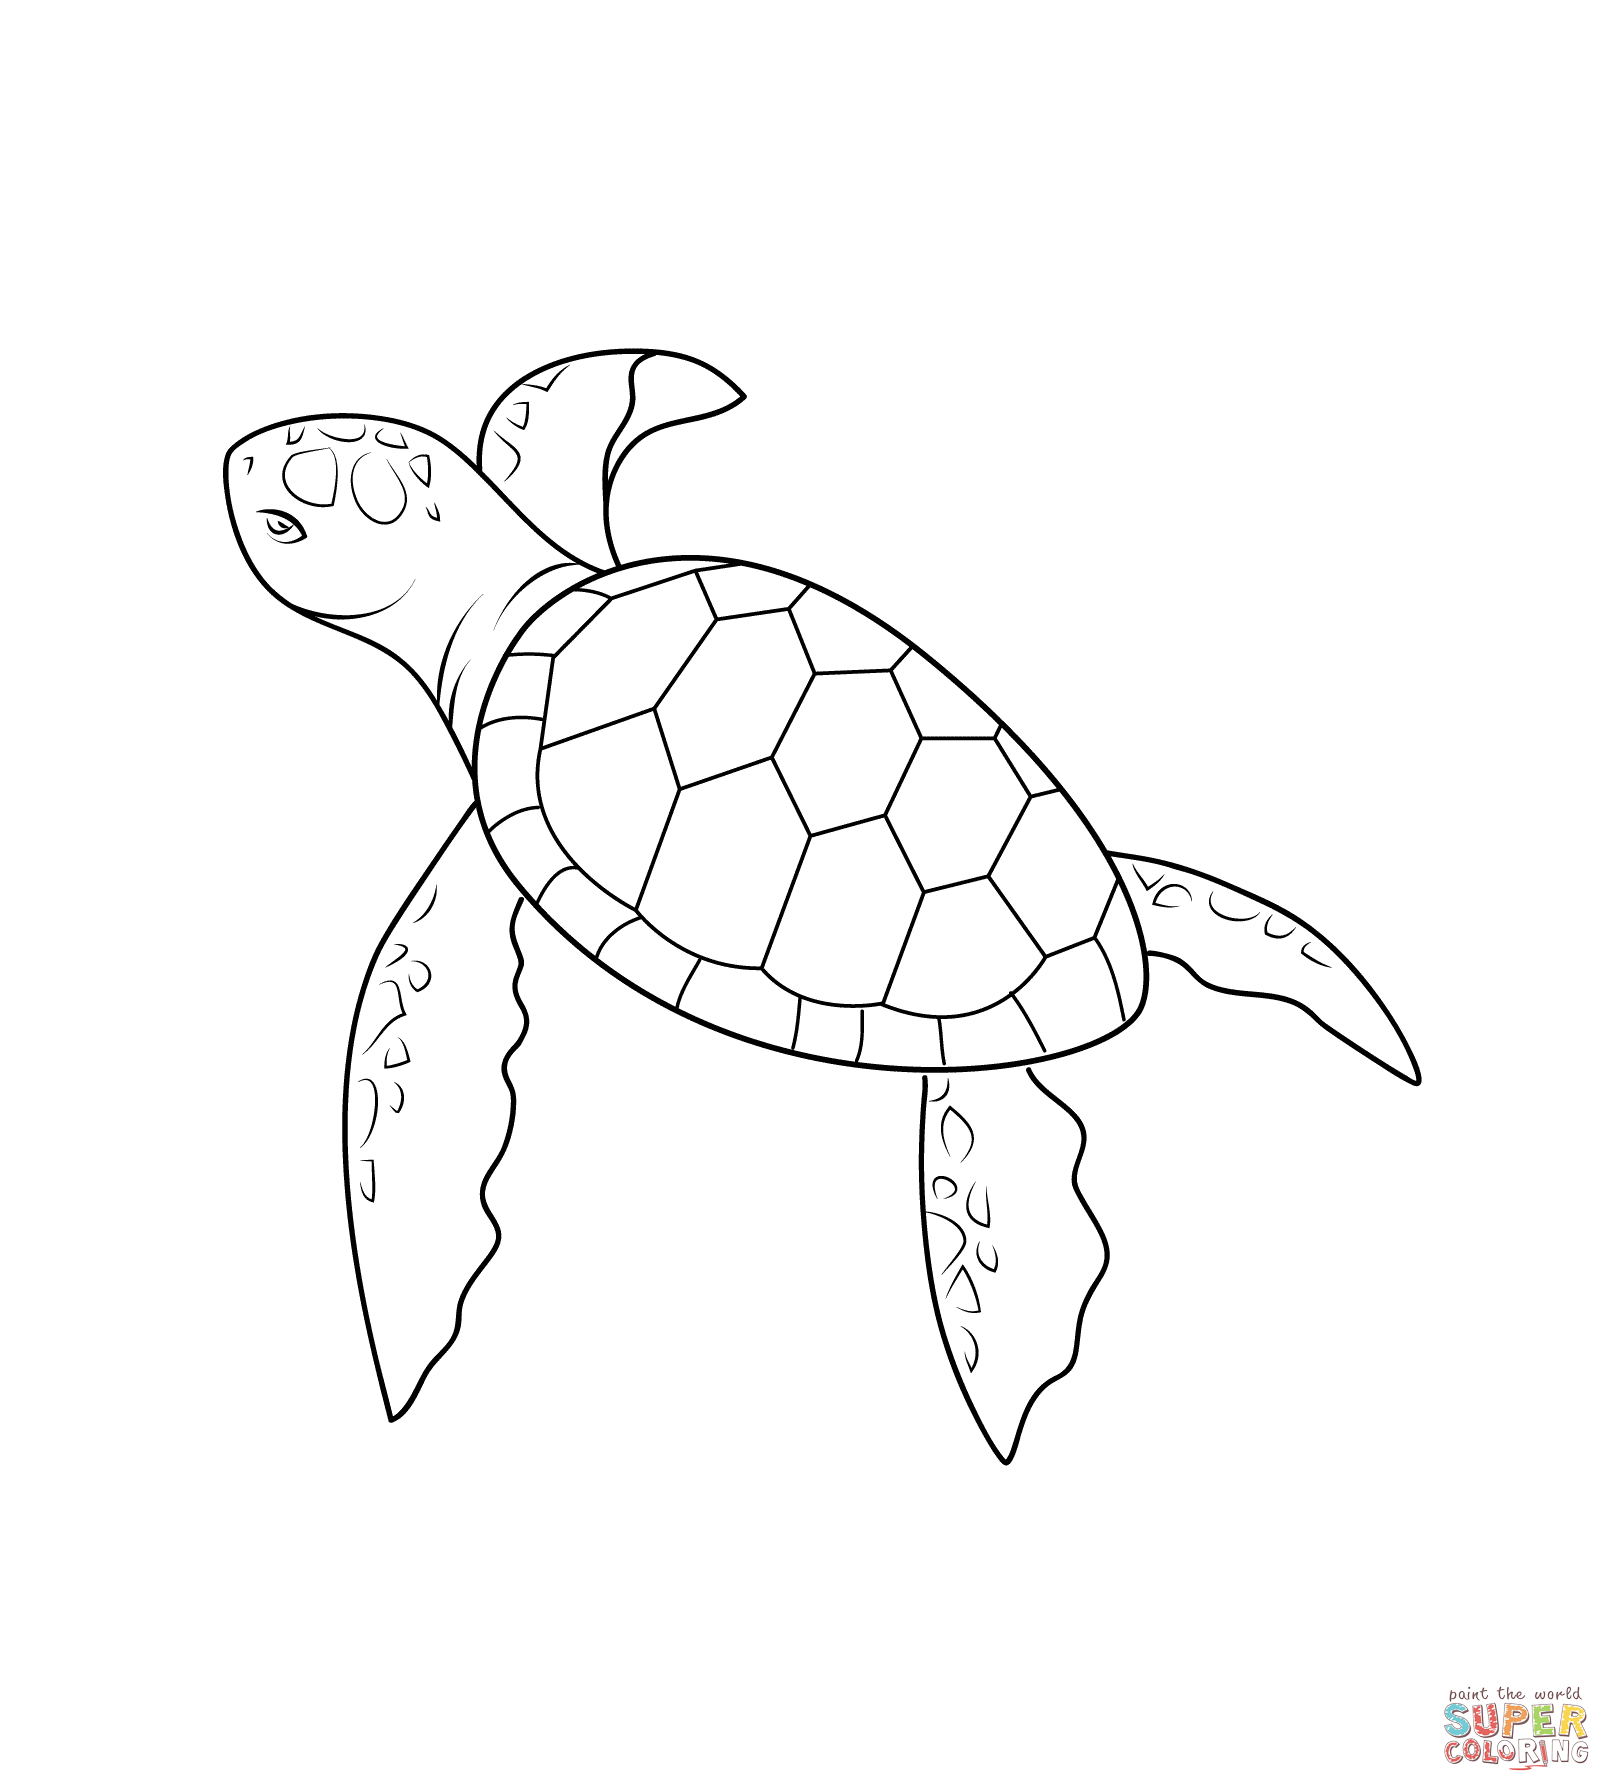 Drawn sea turtle snapping turtle Coloring Baby Free Coloring Turtle